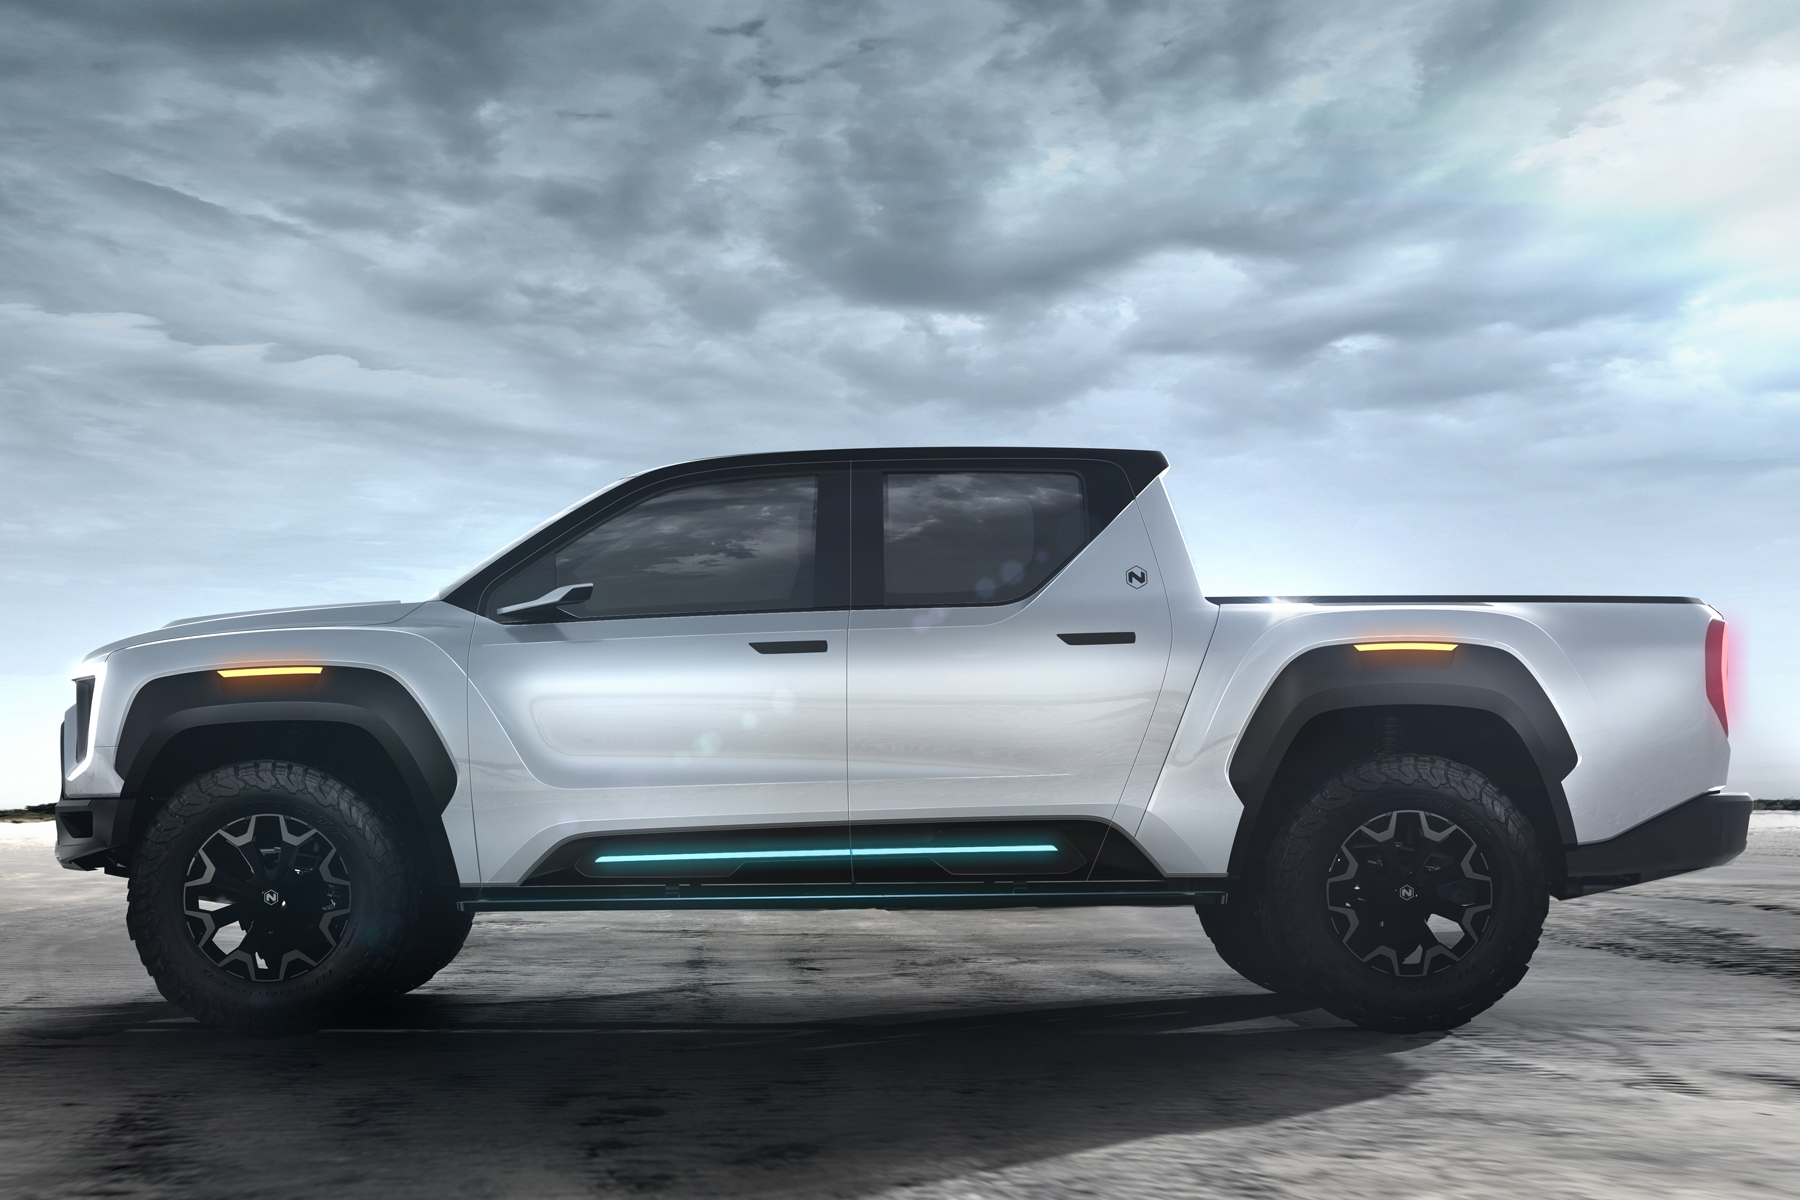 The 2020 Nikola Badger electric pickup